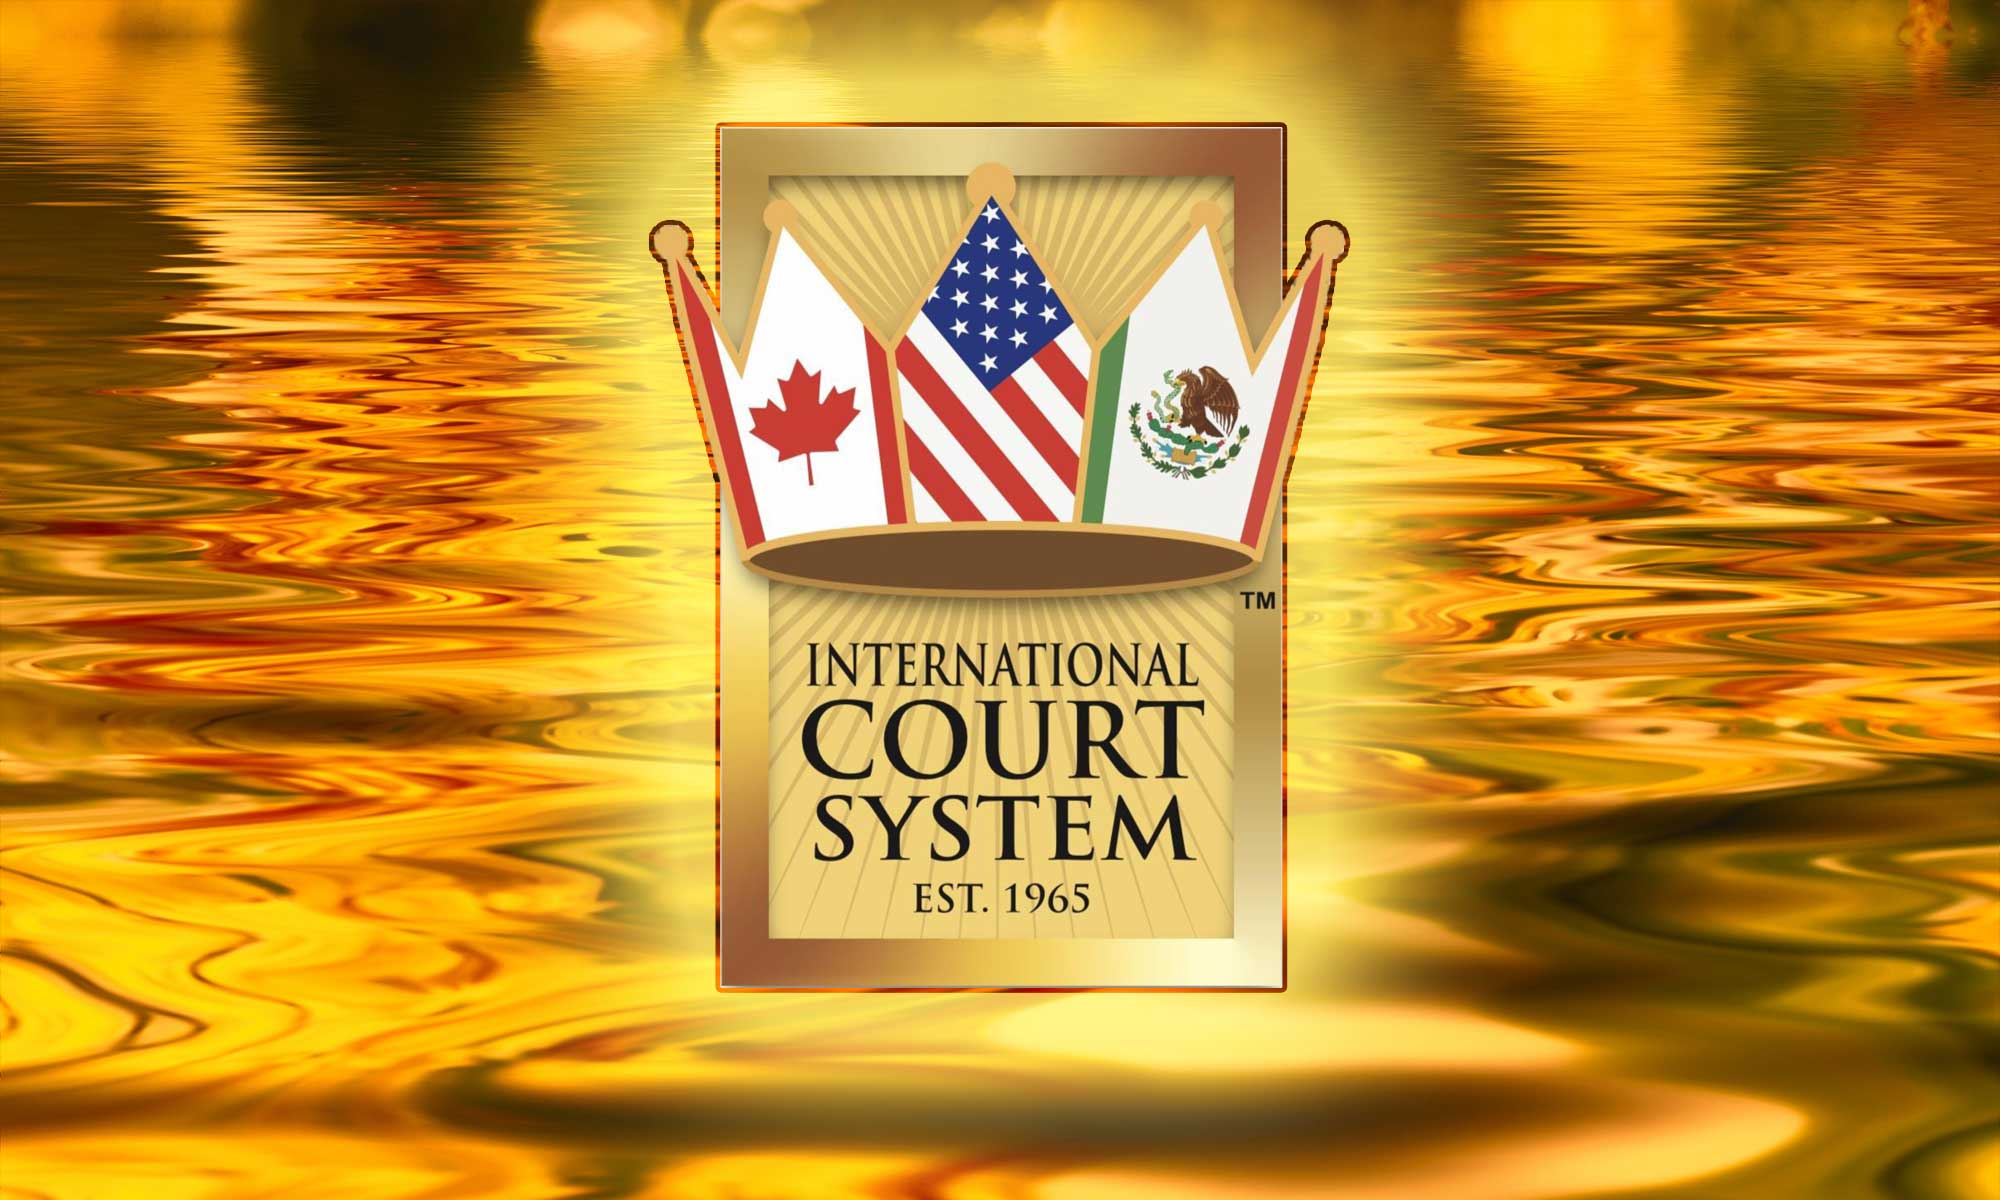 The International Court System